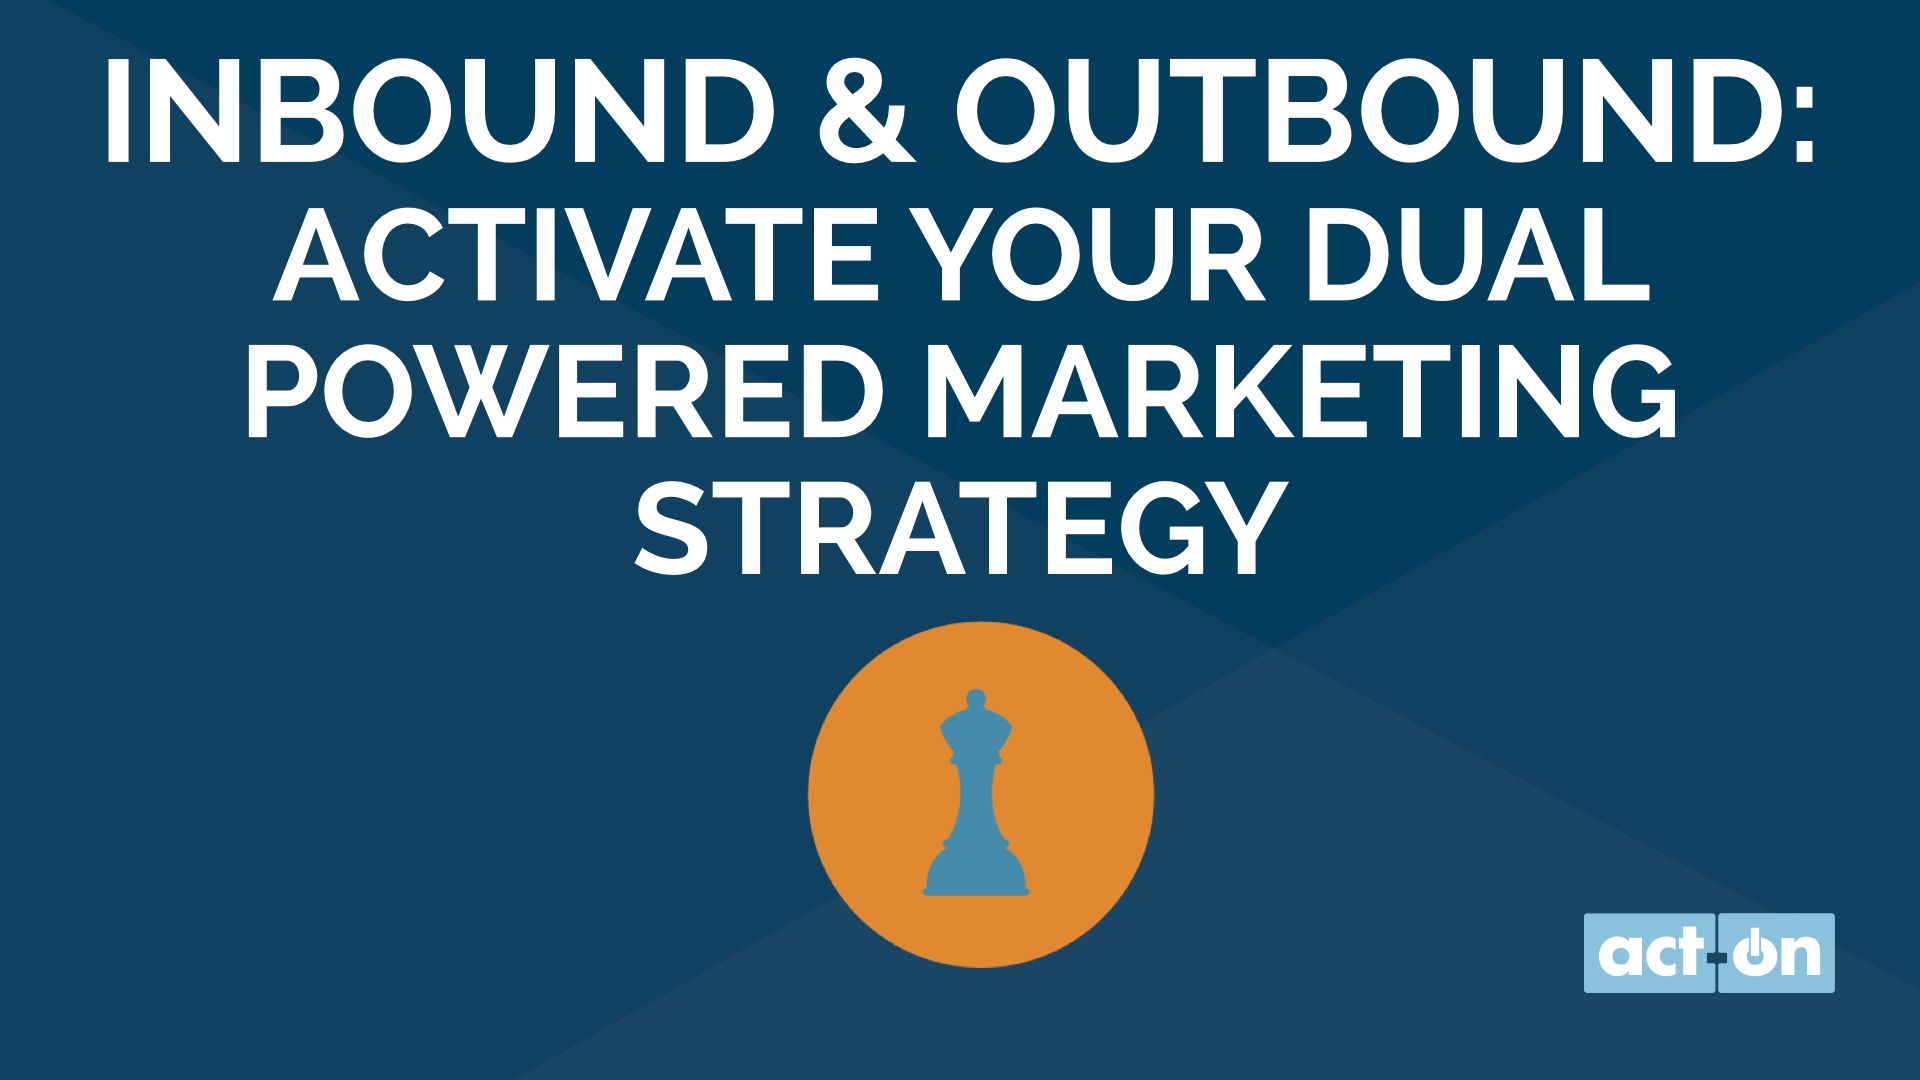 Inbound & Outbound: Activate Your Dual Powered Marketing Strategy